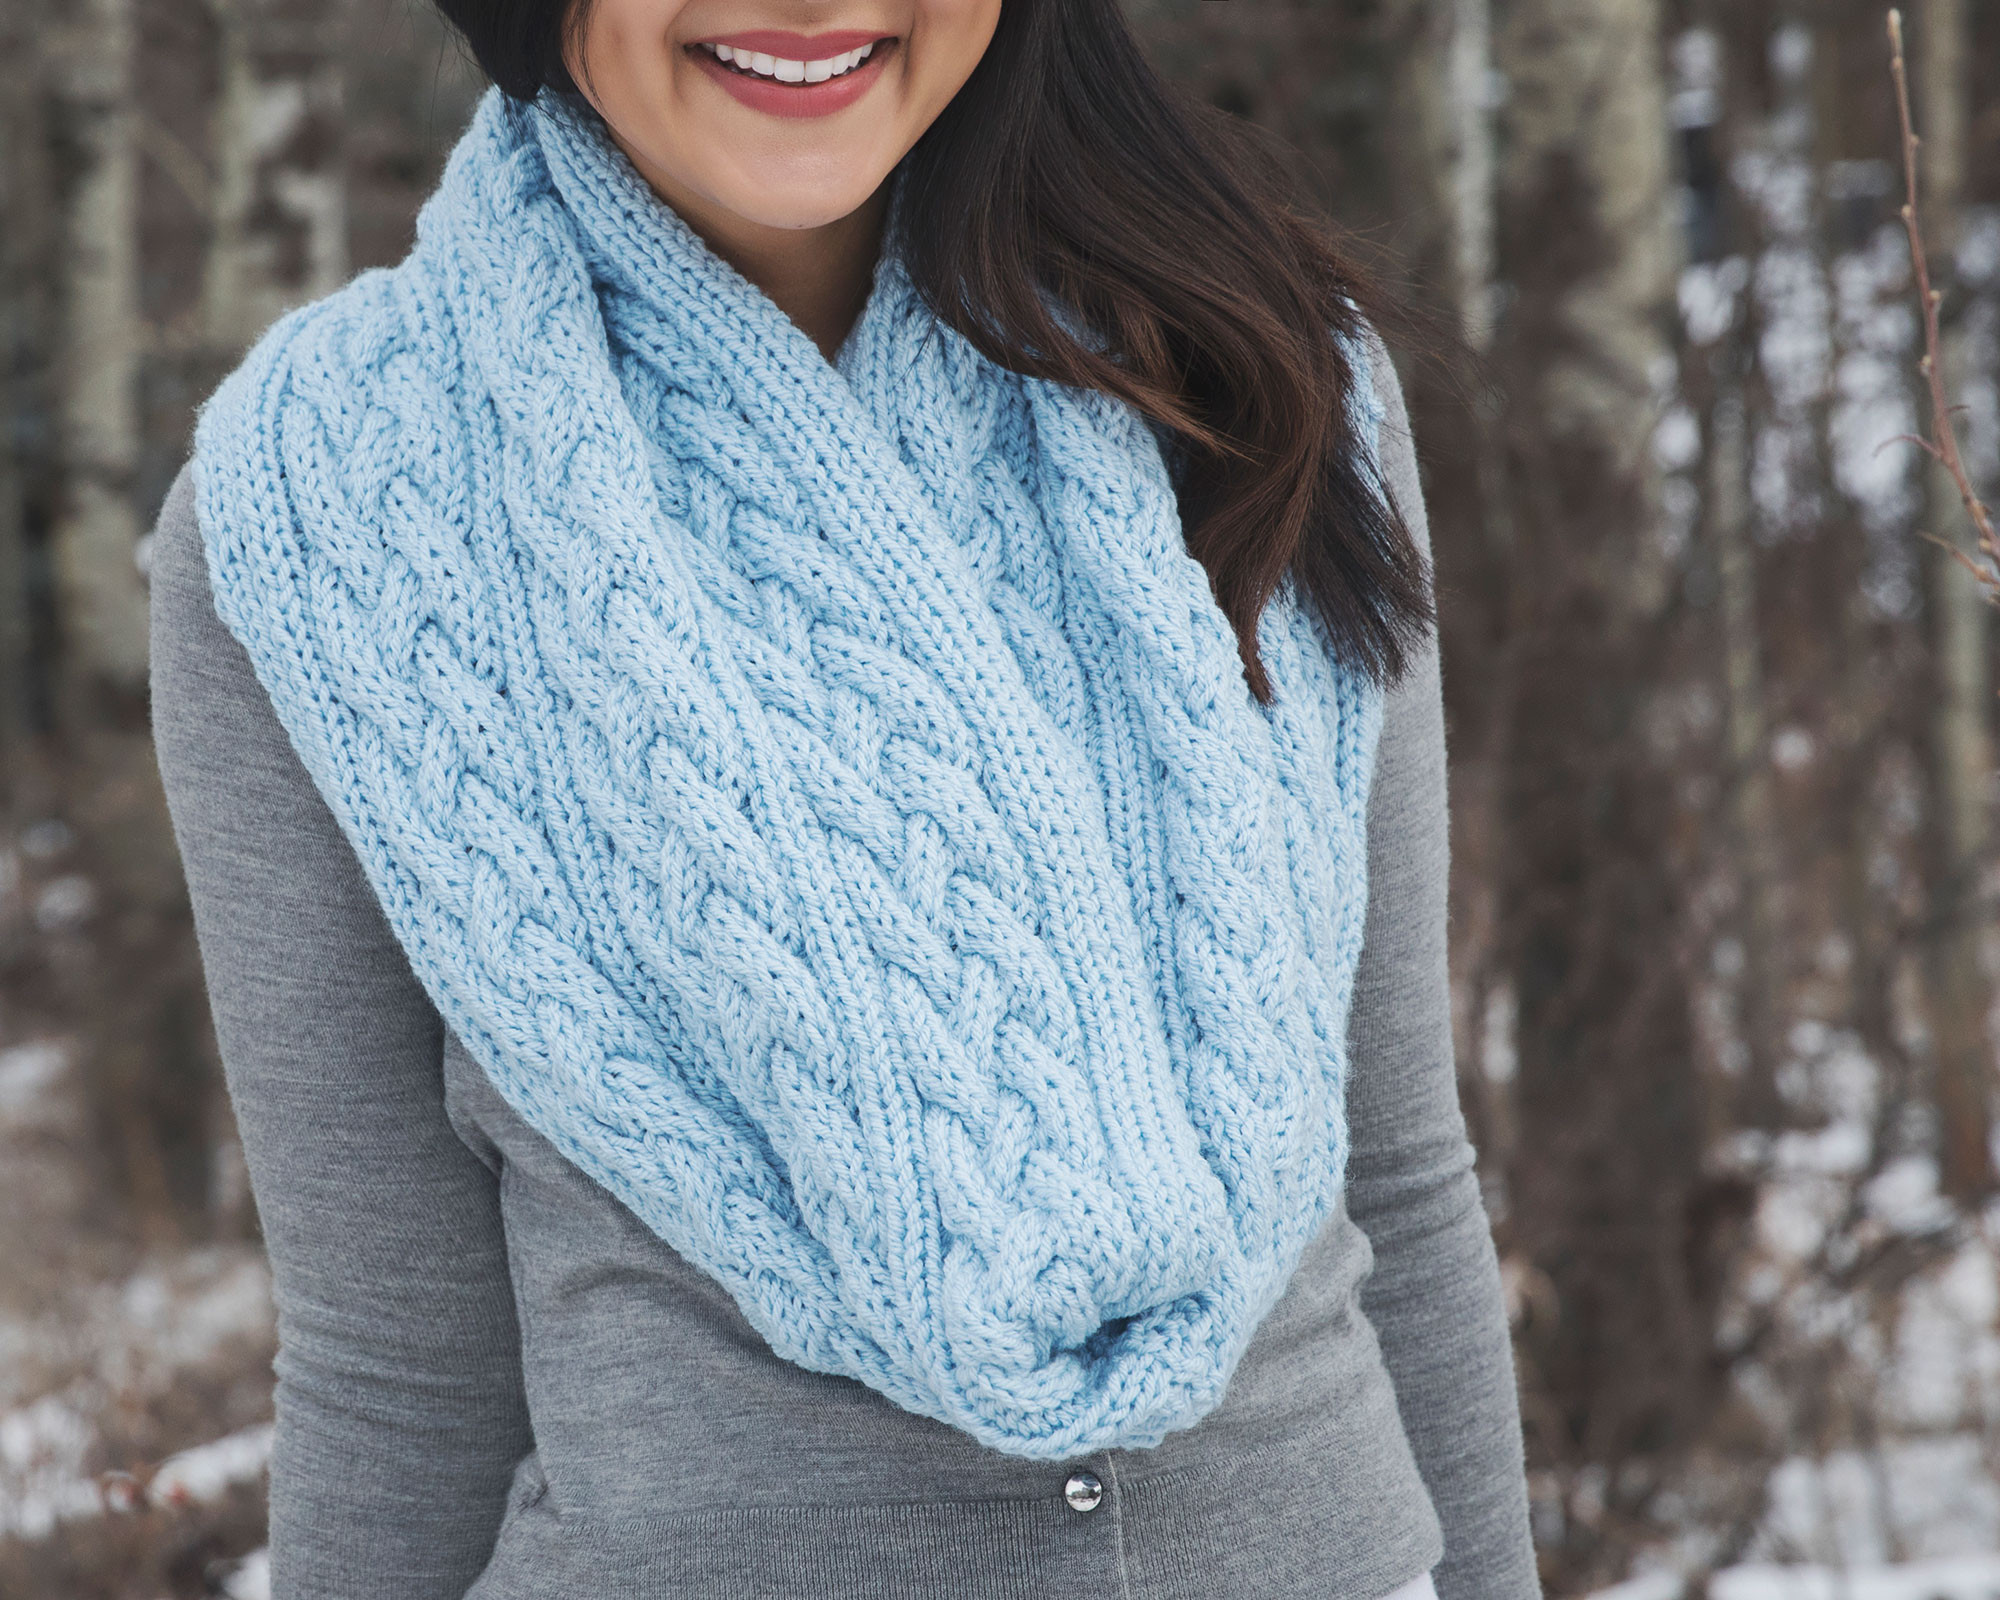 Awesome Braided Cables Winter Scarf Knitting Pattern Leelee Knits Cable Scarf Of Innovative 49 Ideas Cable Scarf